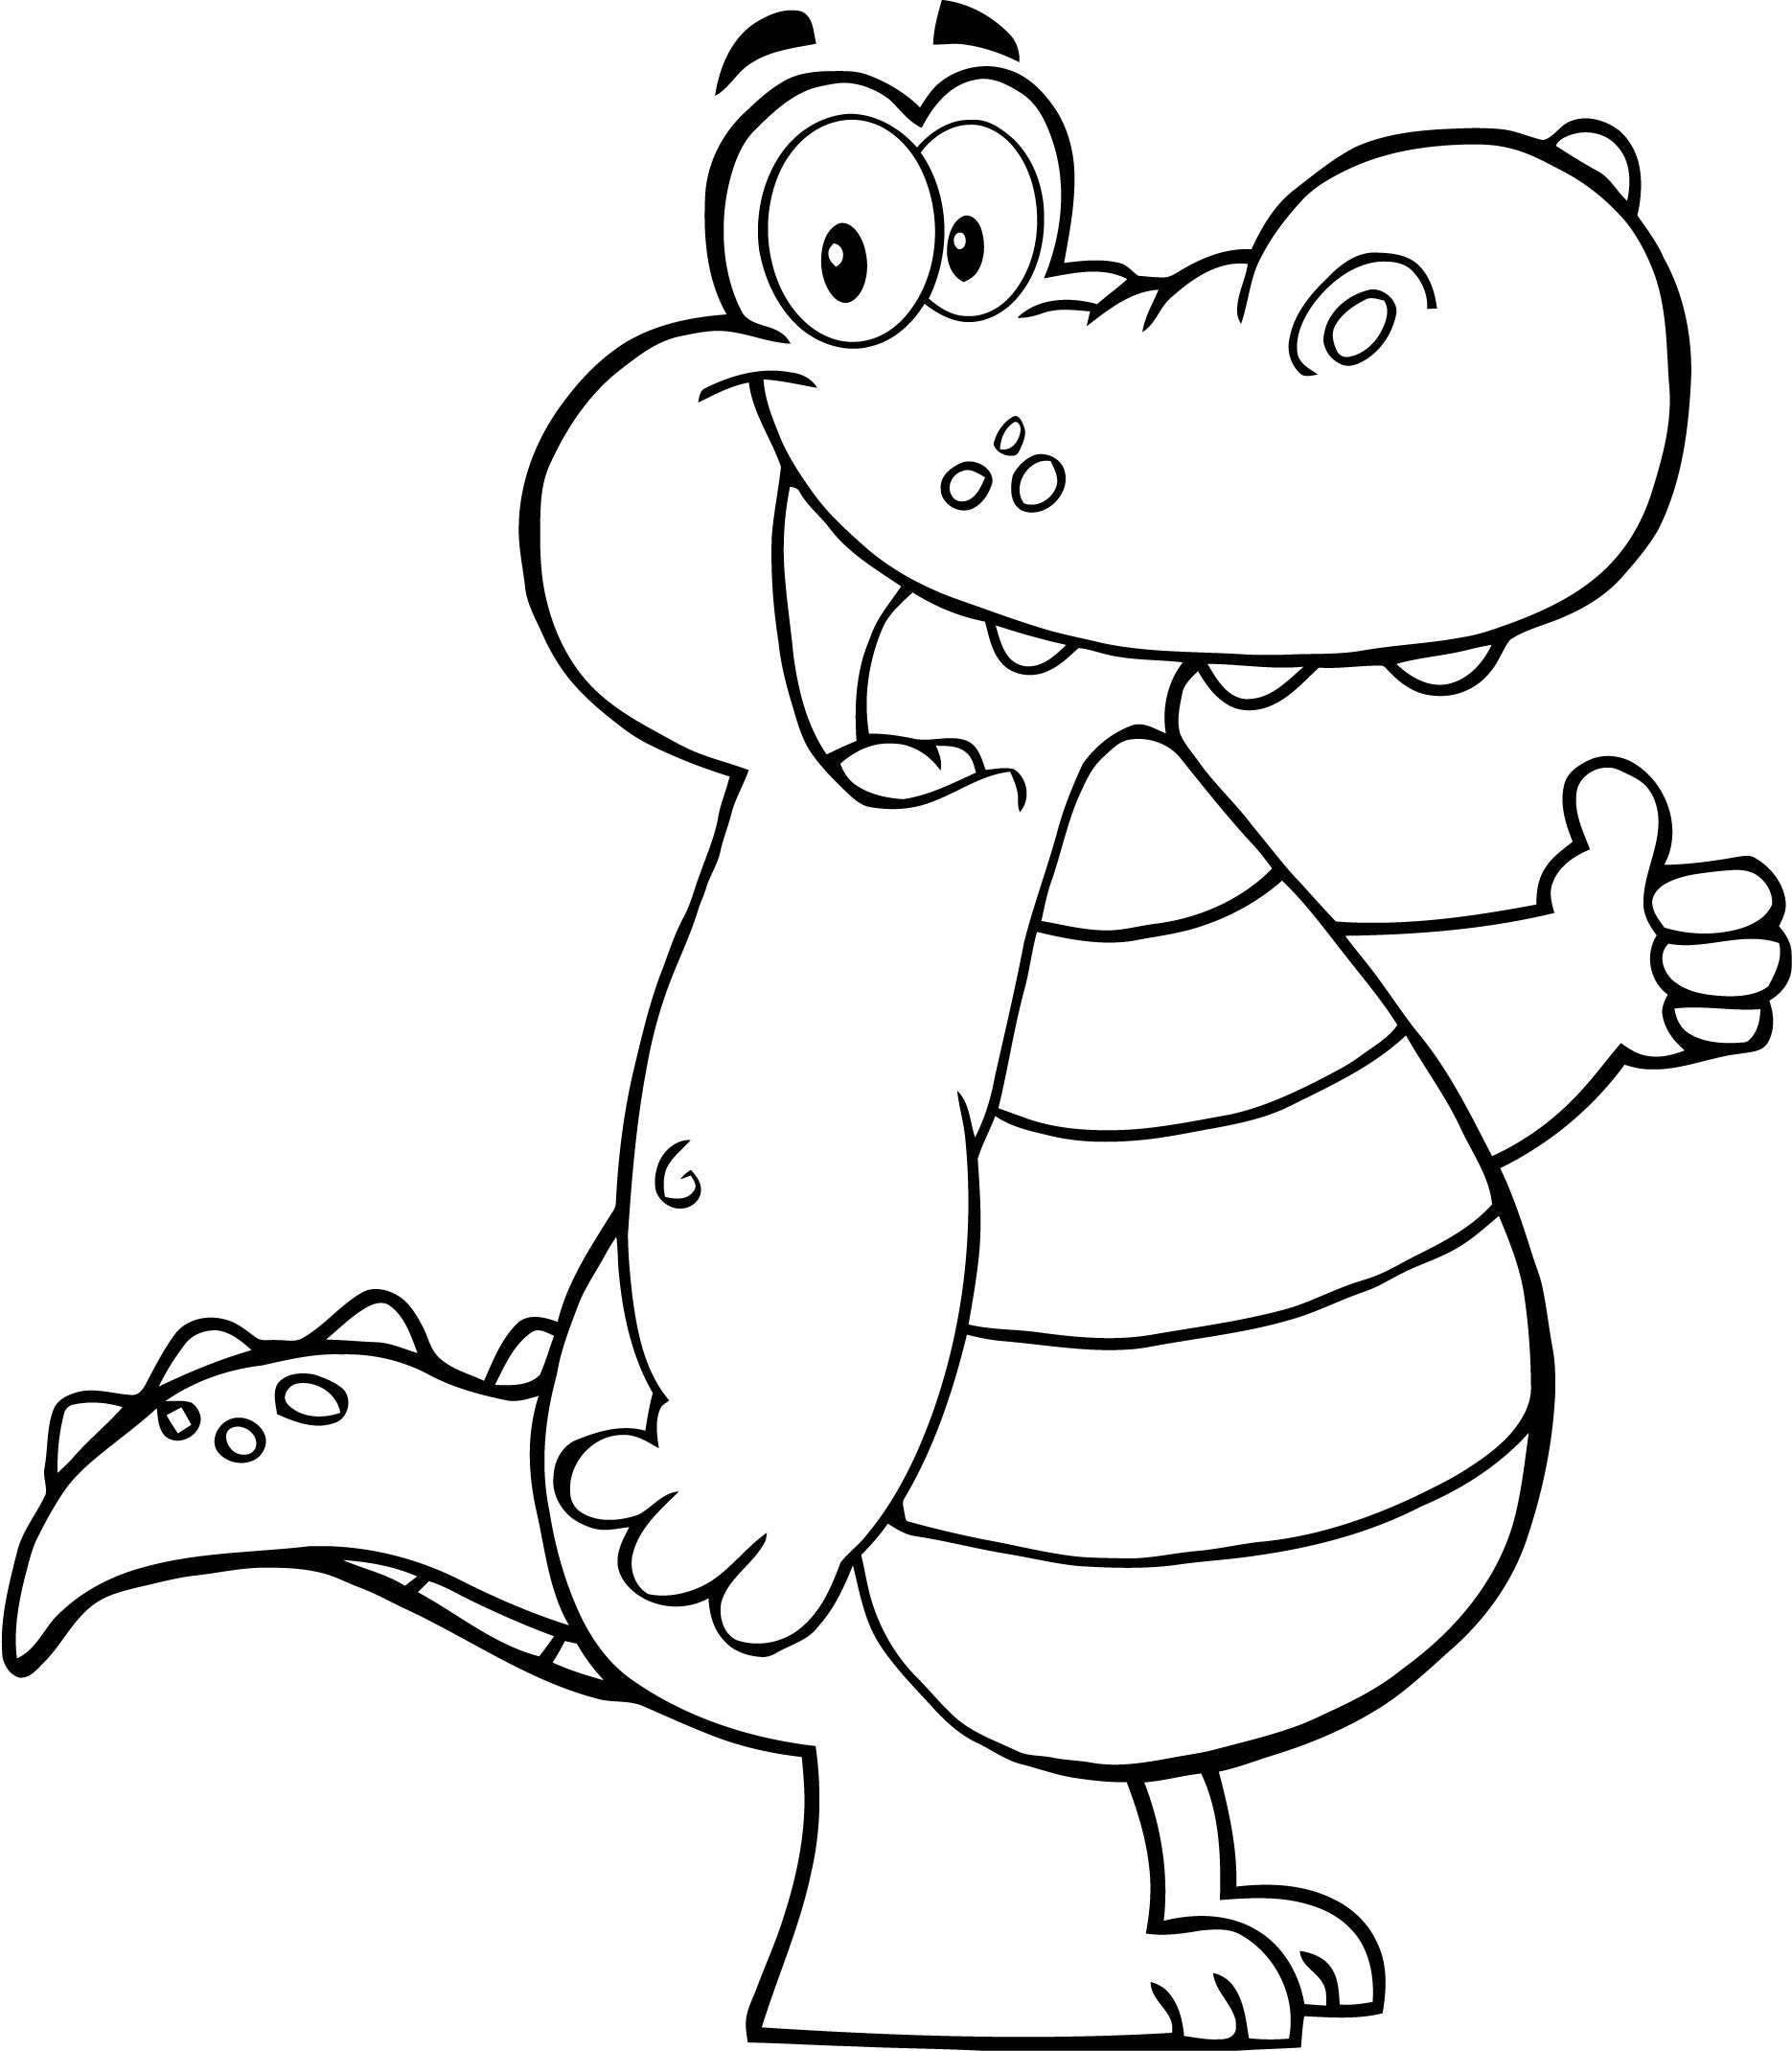 Baby Alligator Coloring Pages Wcyfpa5 Animal Coloring Pages Preschool Coloring Pages Free Printable Coloring Pages